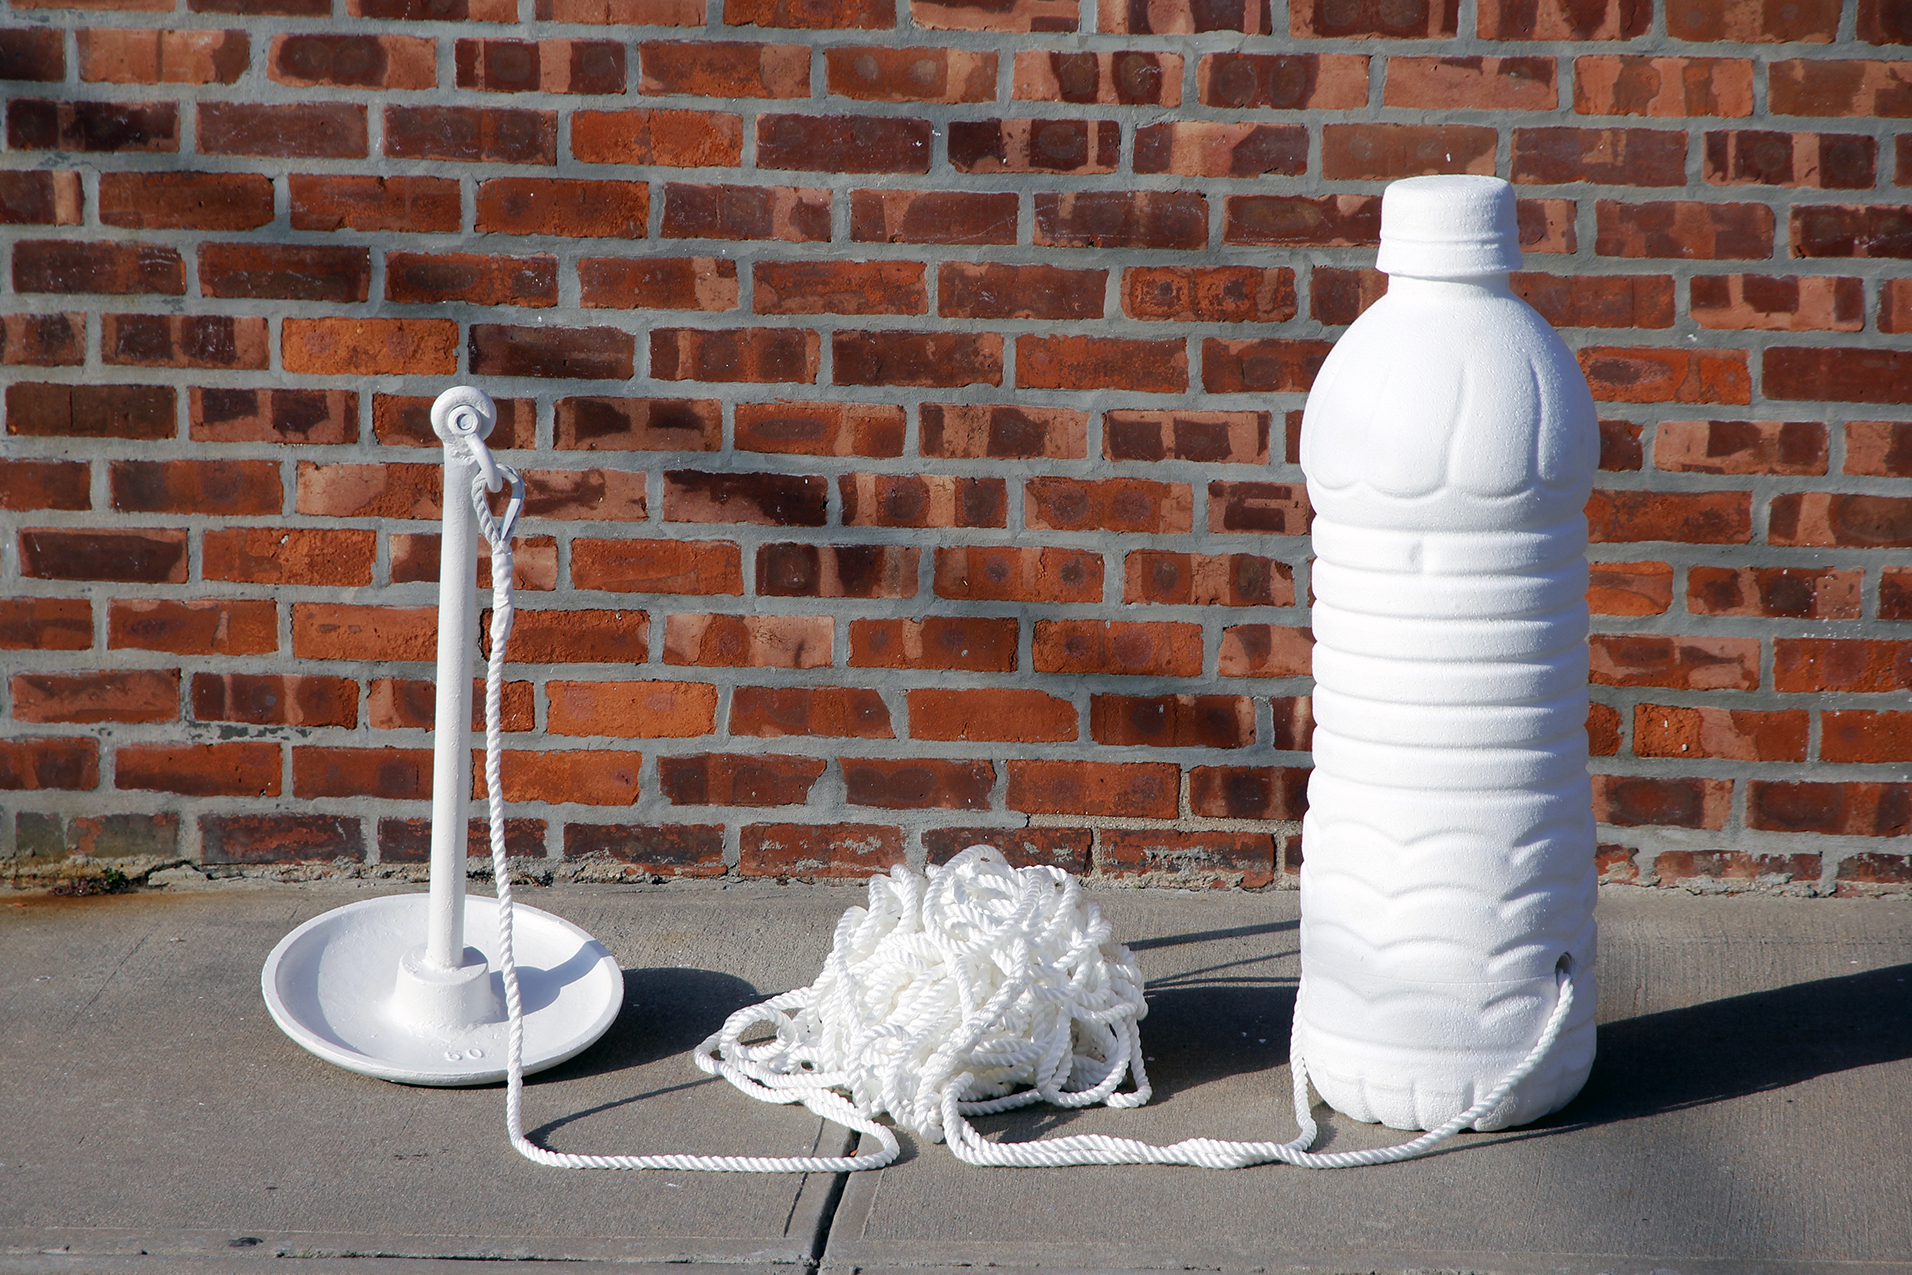 Water Bottle Buoy (white) Brickwall - Artwork by Christopher Saucedo